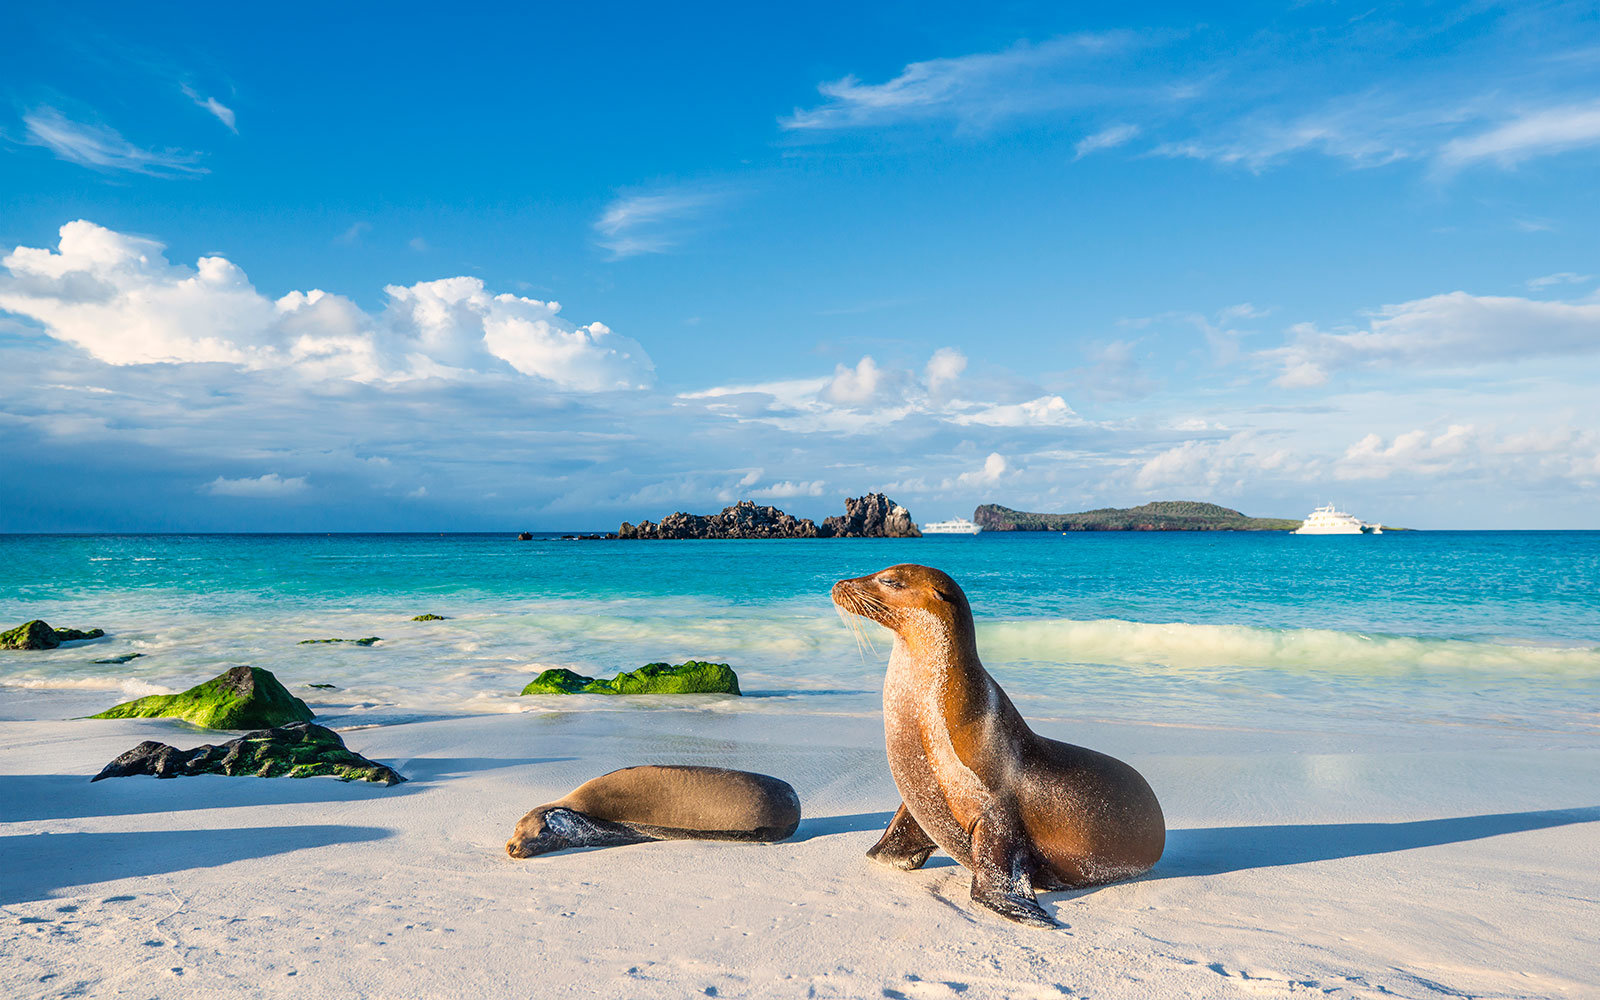 Sea Lions, The Galapagos, Ecuador